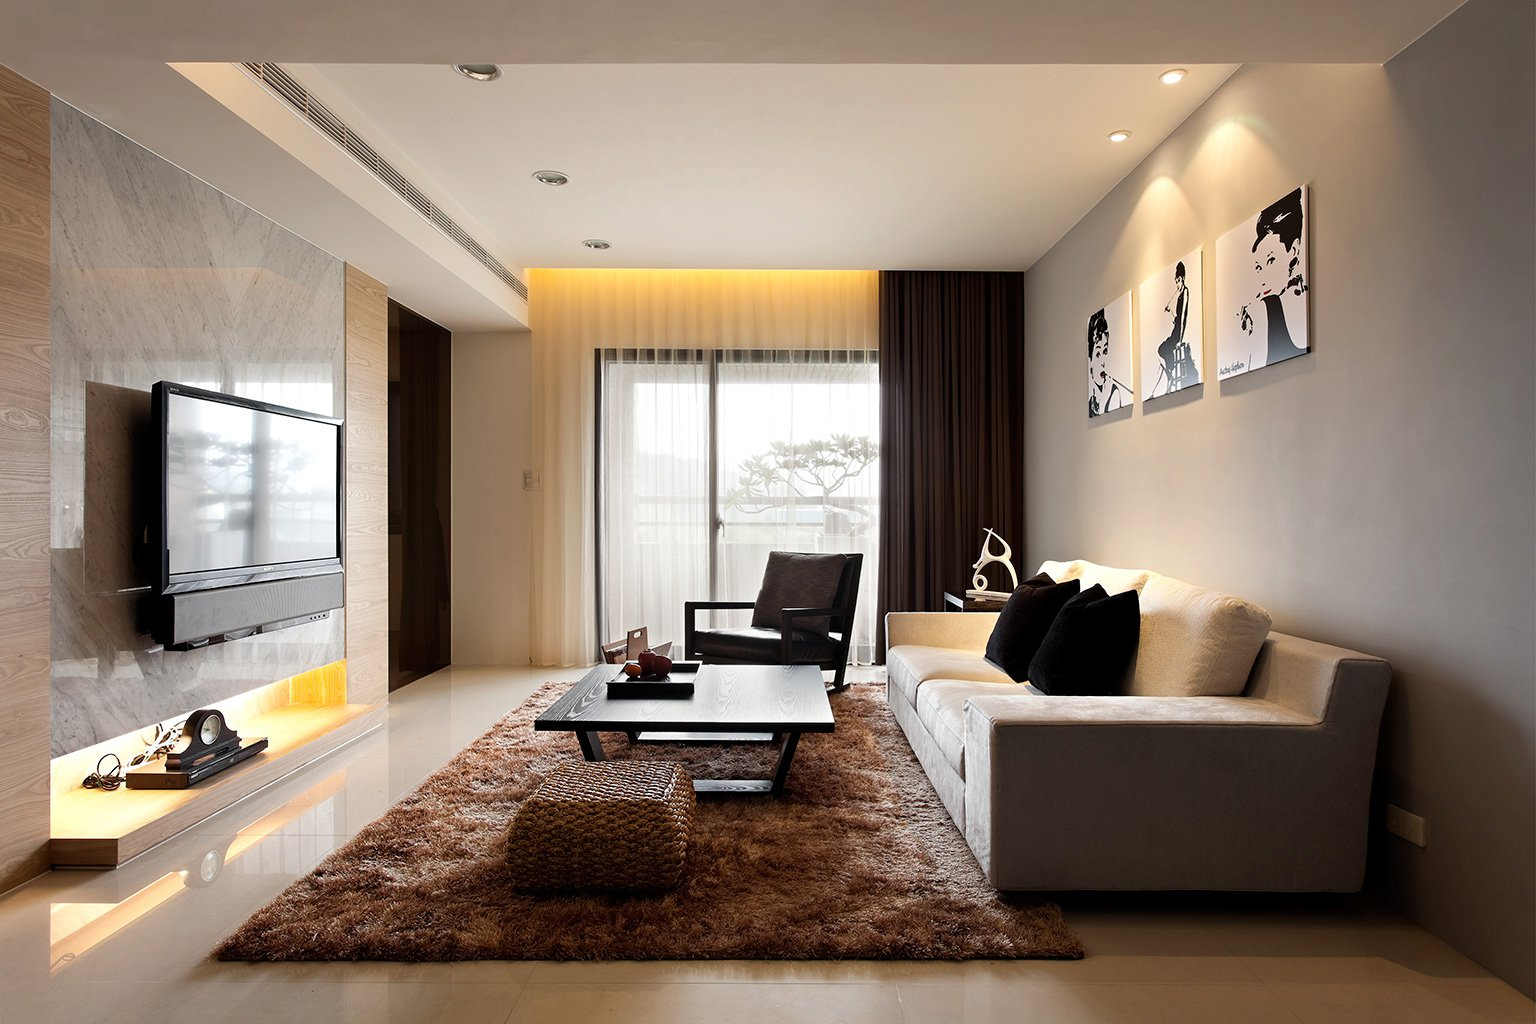 Perfect 25 Best Modern Living Room Designs. Jul 14, 2015. 22.4kshares